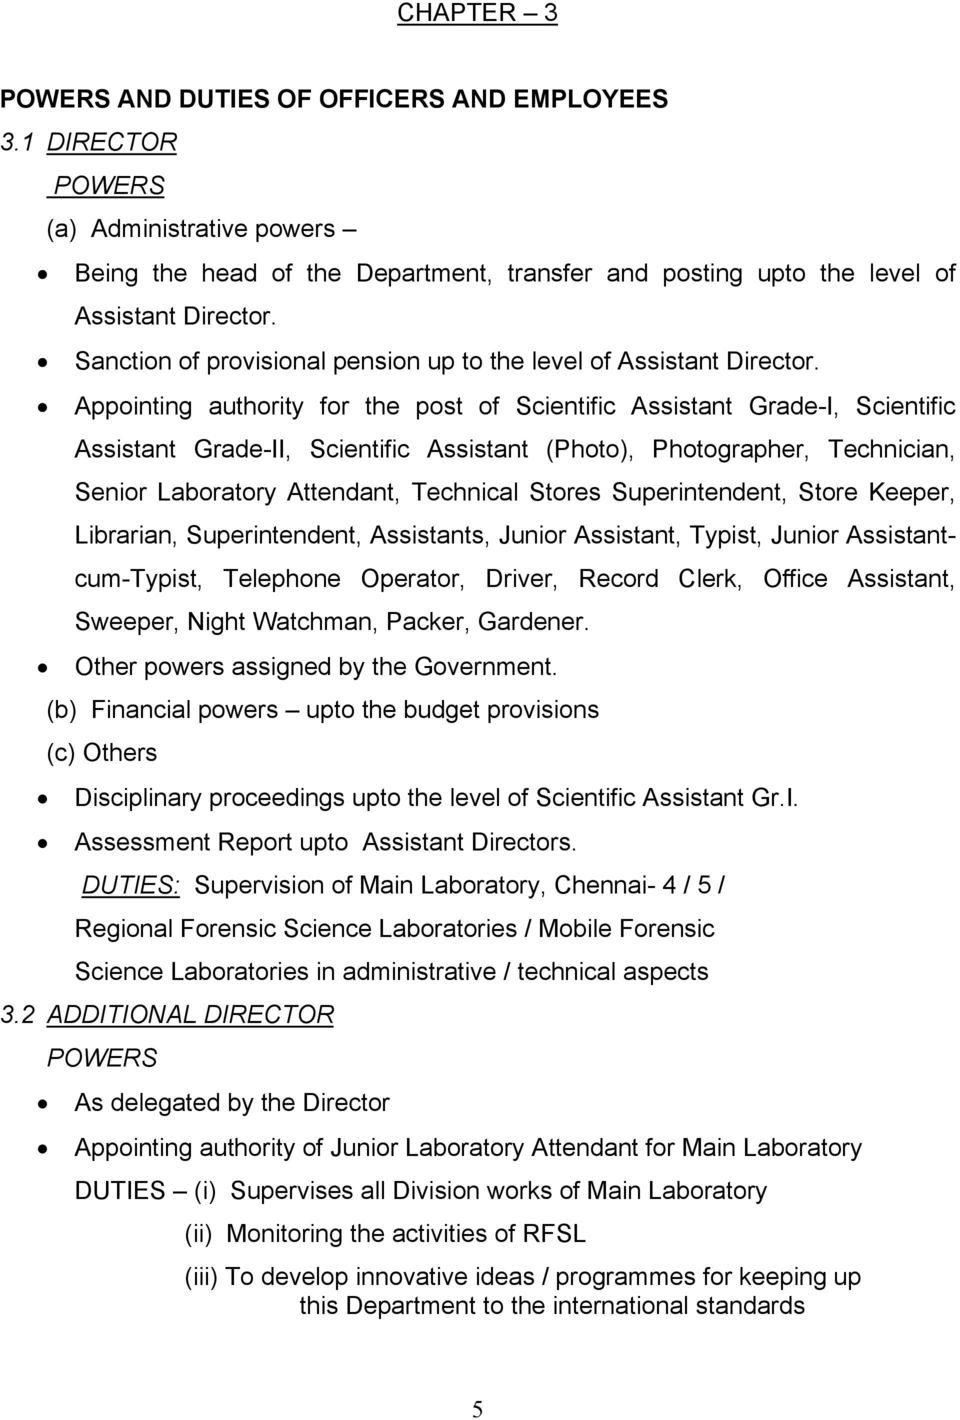 Appointing authority for the post of Scientific Assistant Grade-I, Scientific Assistant Grade-II, Scientific Assistant (Photo), Photographer, Technician, Senior Laboratory Attendant, Technical Stores